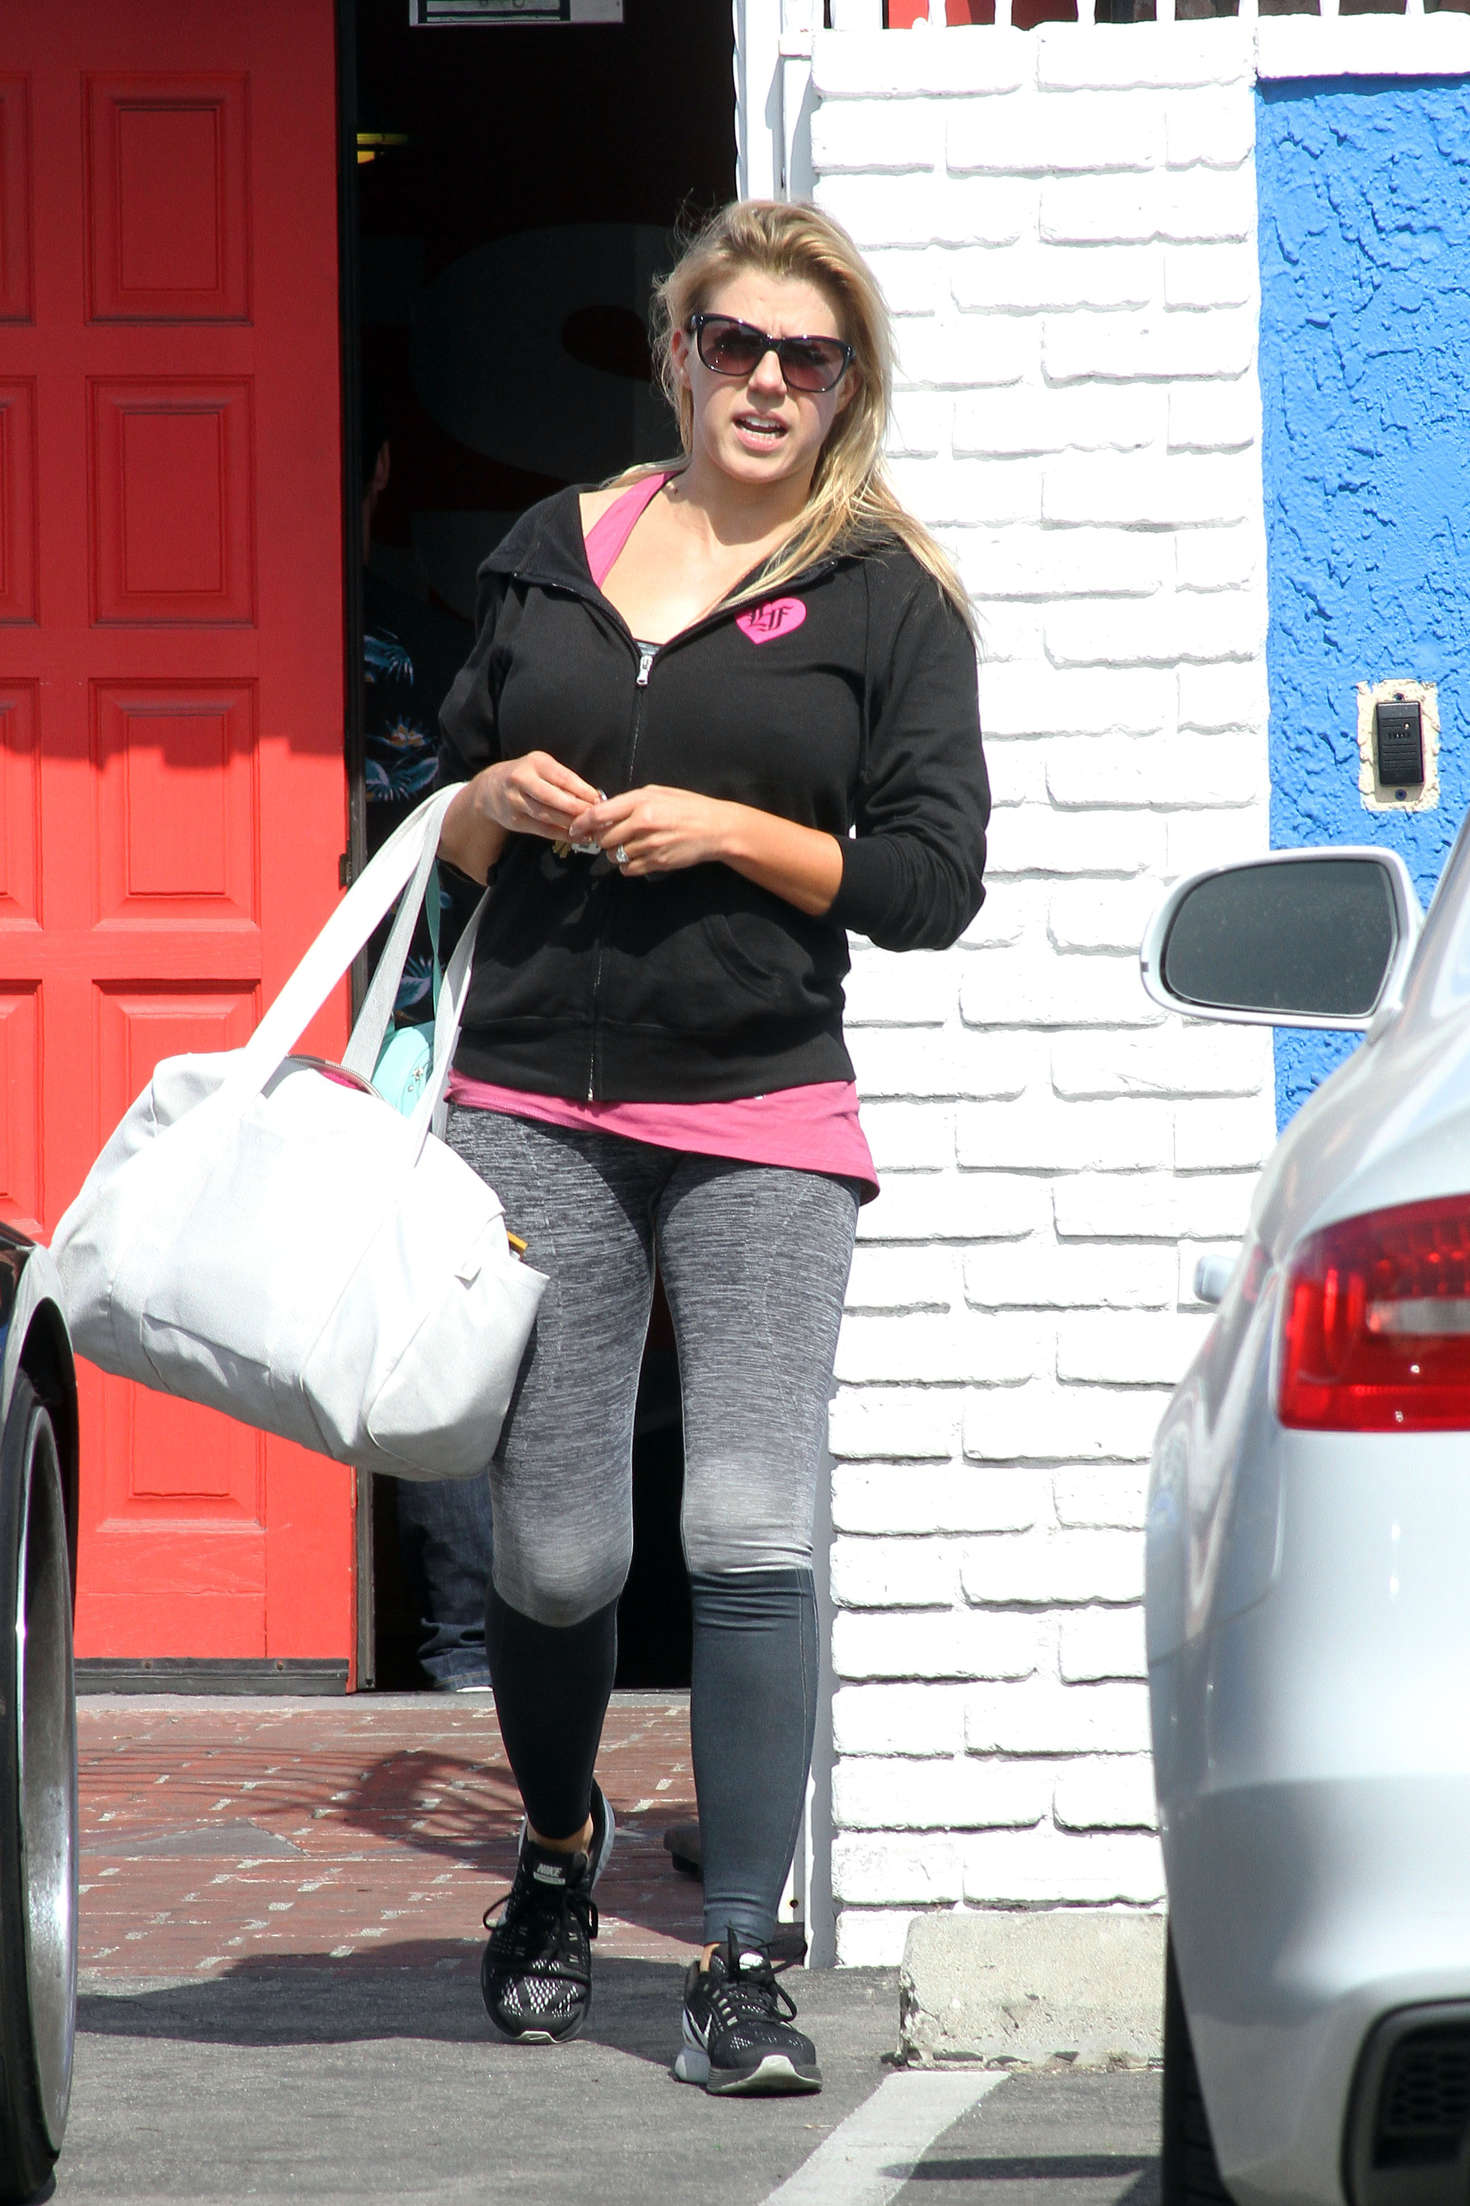 Jodie Sweetin in Tights at DWTS Studio in Hollywood